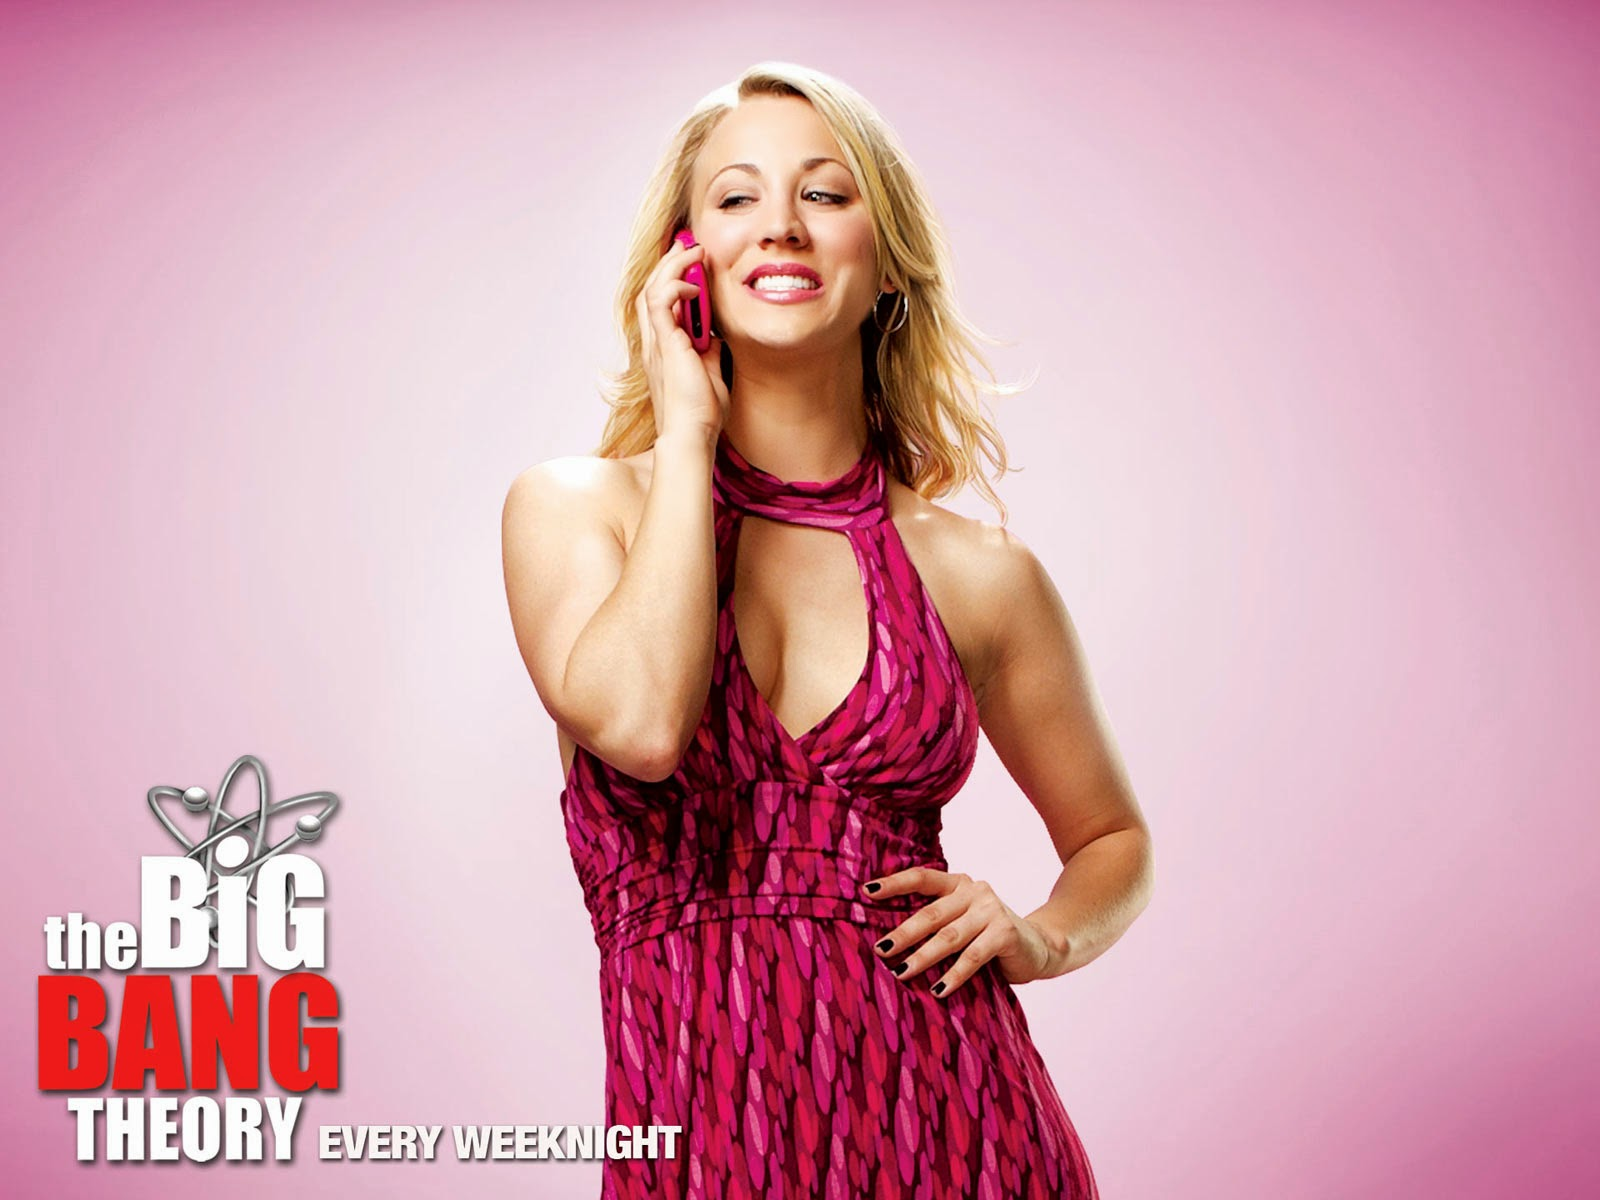 Penny - Papel de parede The Big Bang Theory